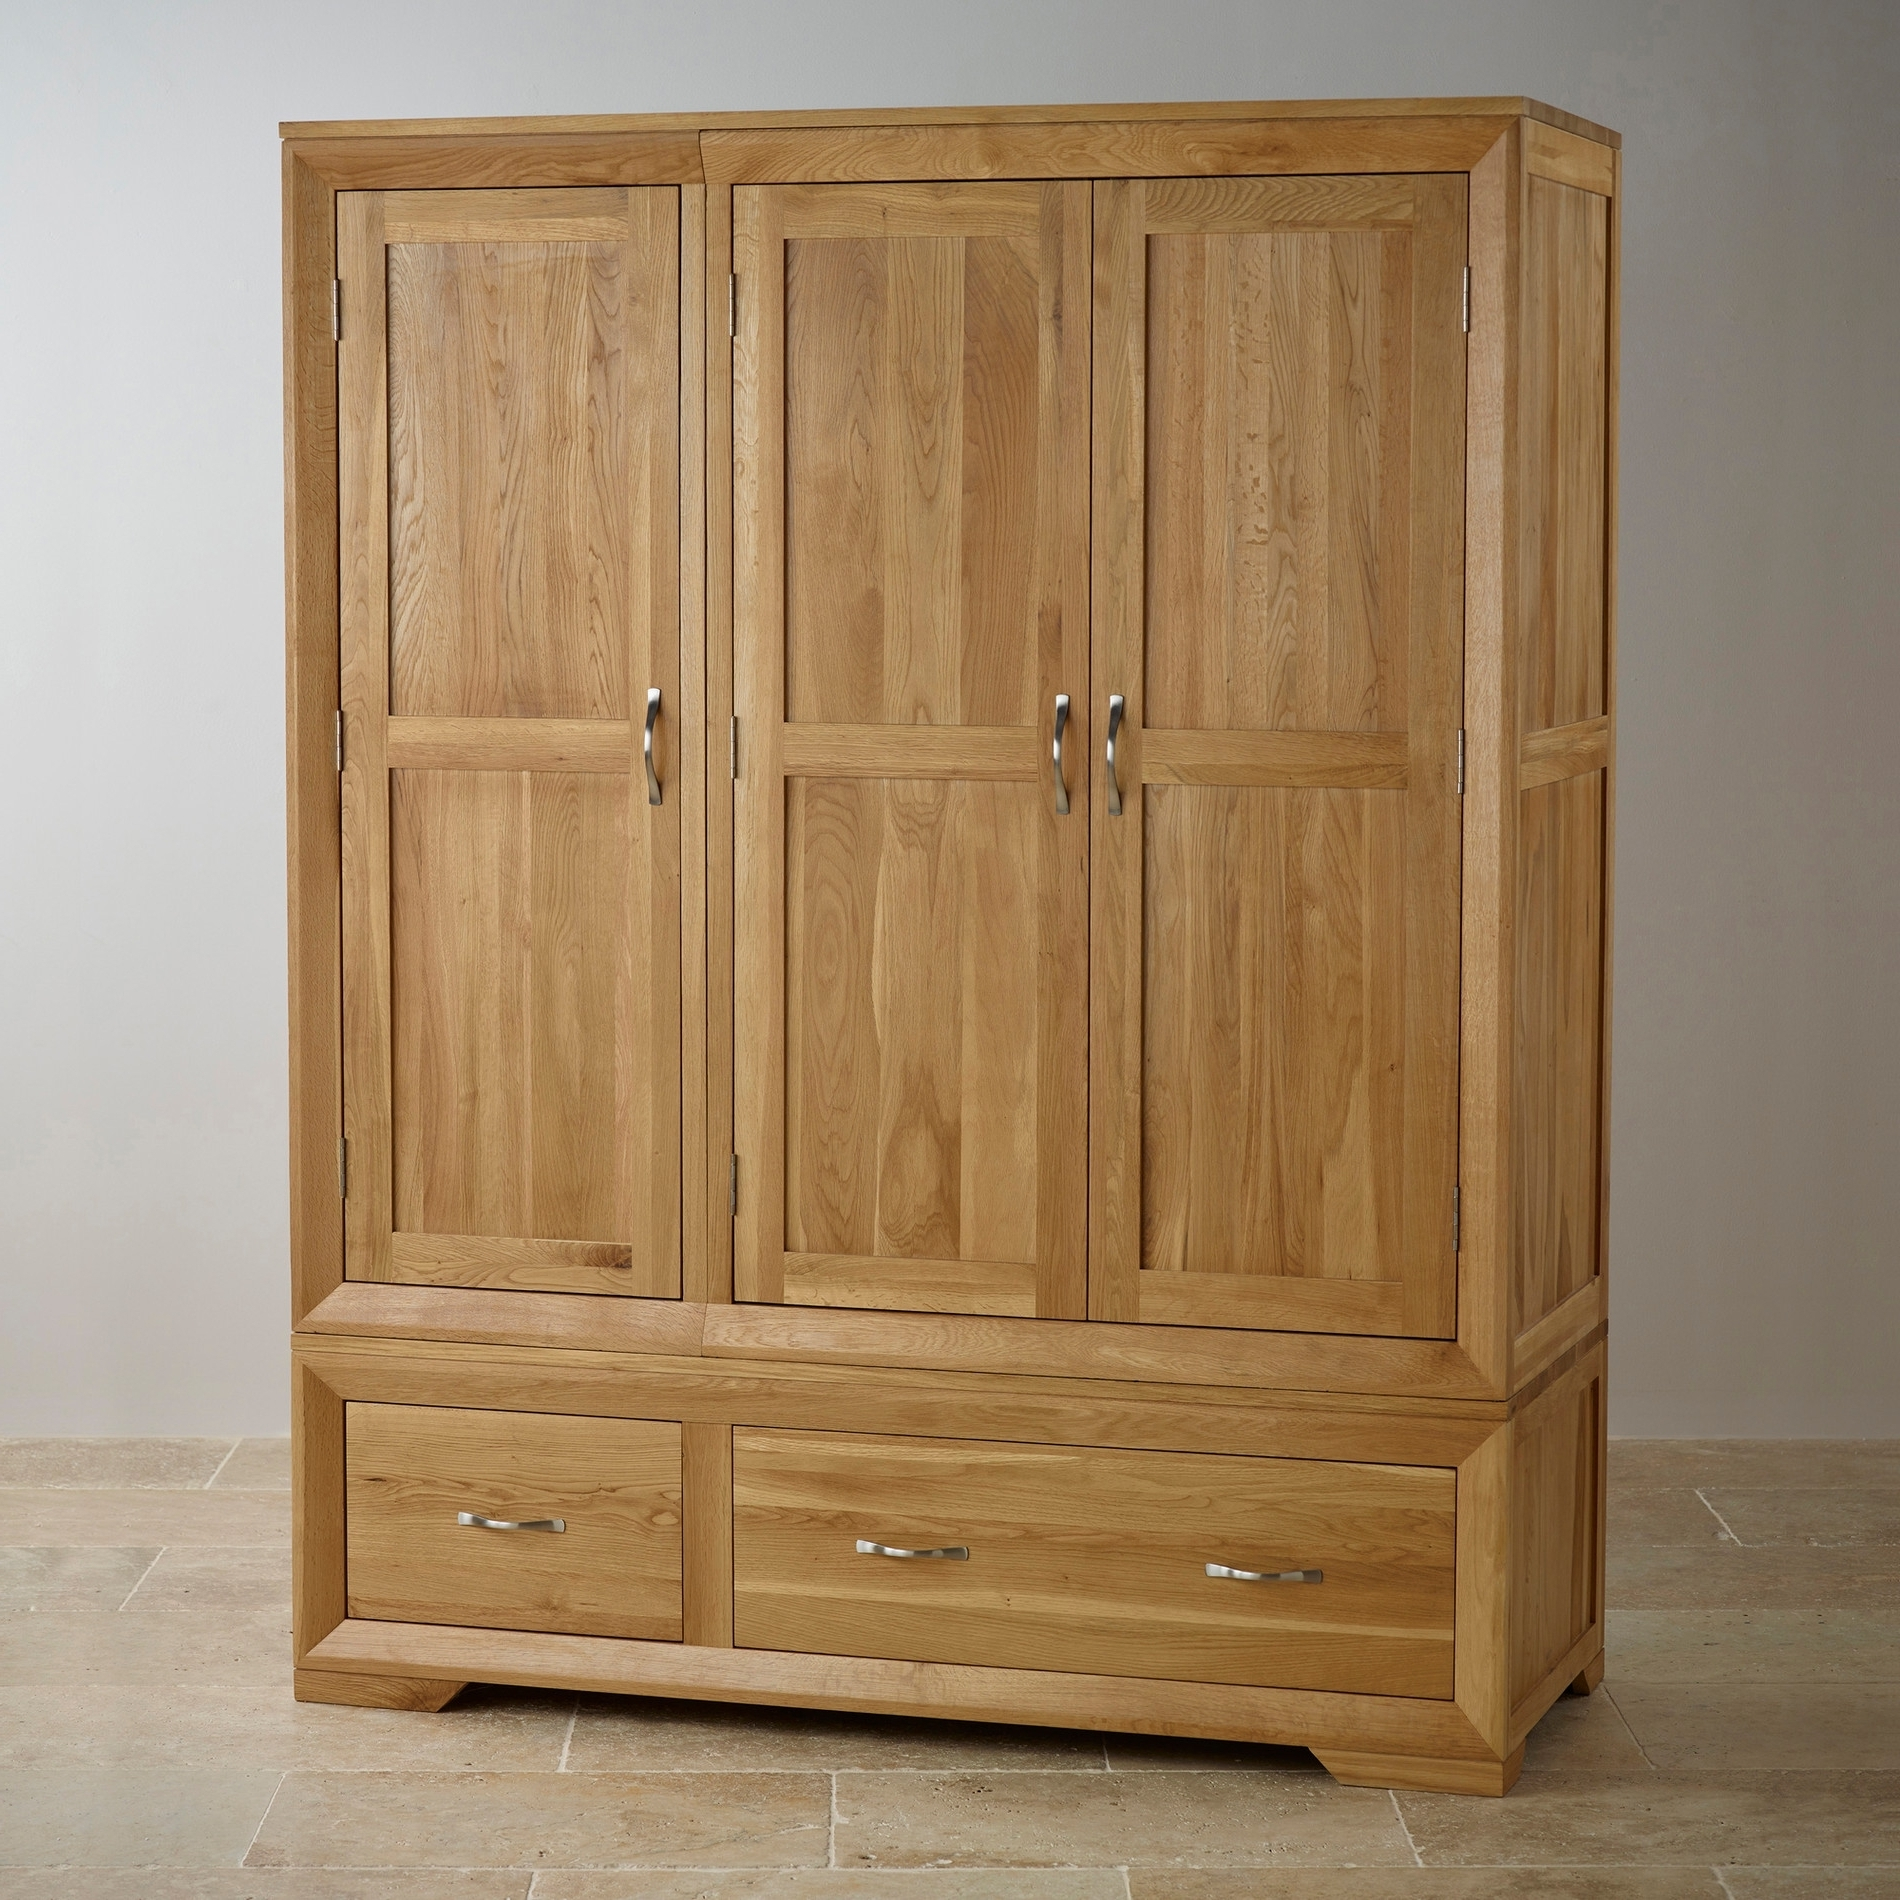 Brilliant Solid Oak Wardrobes For Sale – Buildsimplehome For Latest Oak Wardrobes For Sale (View 5 of 15)